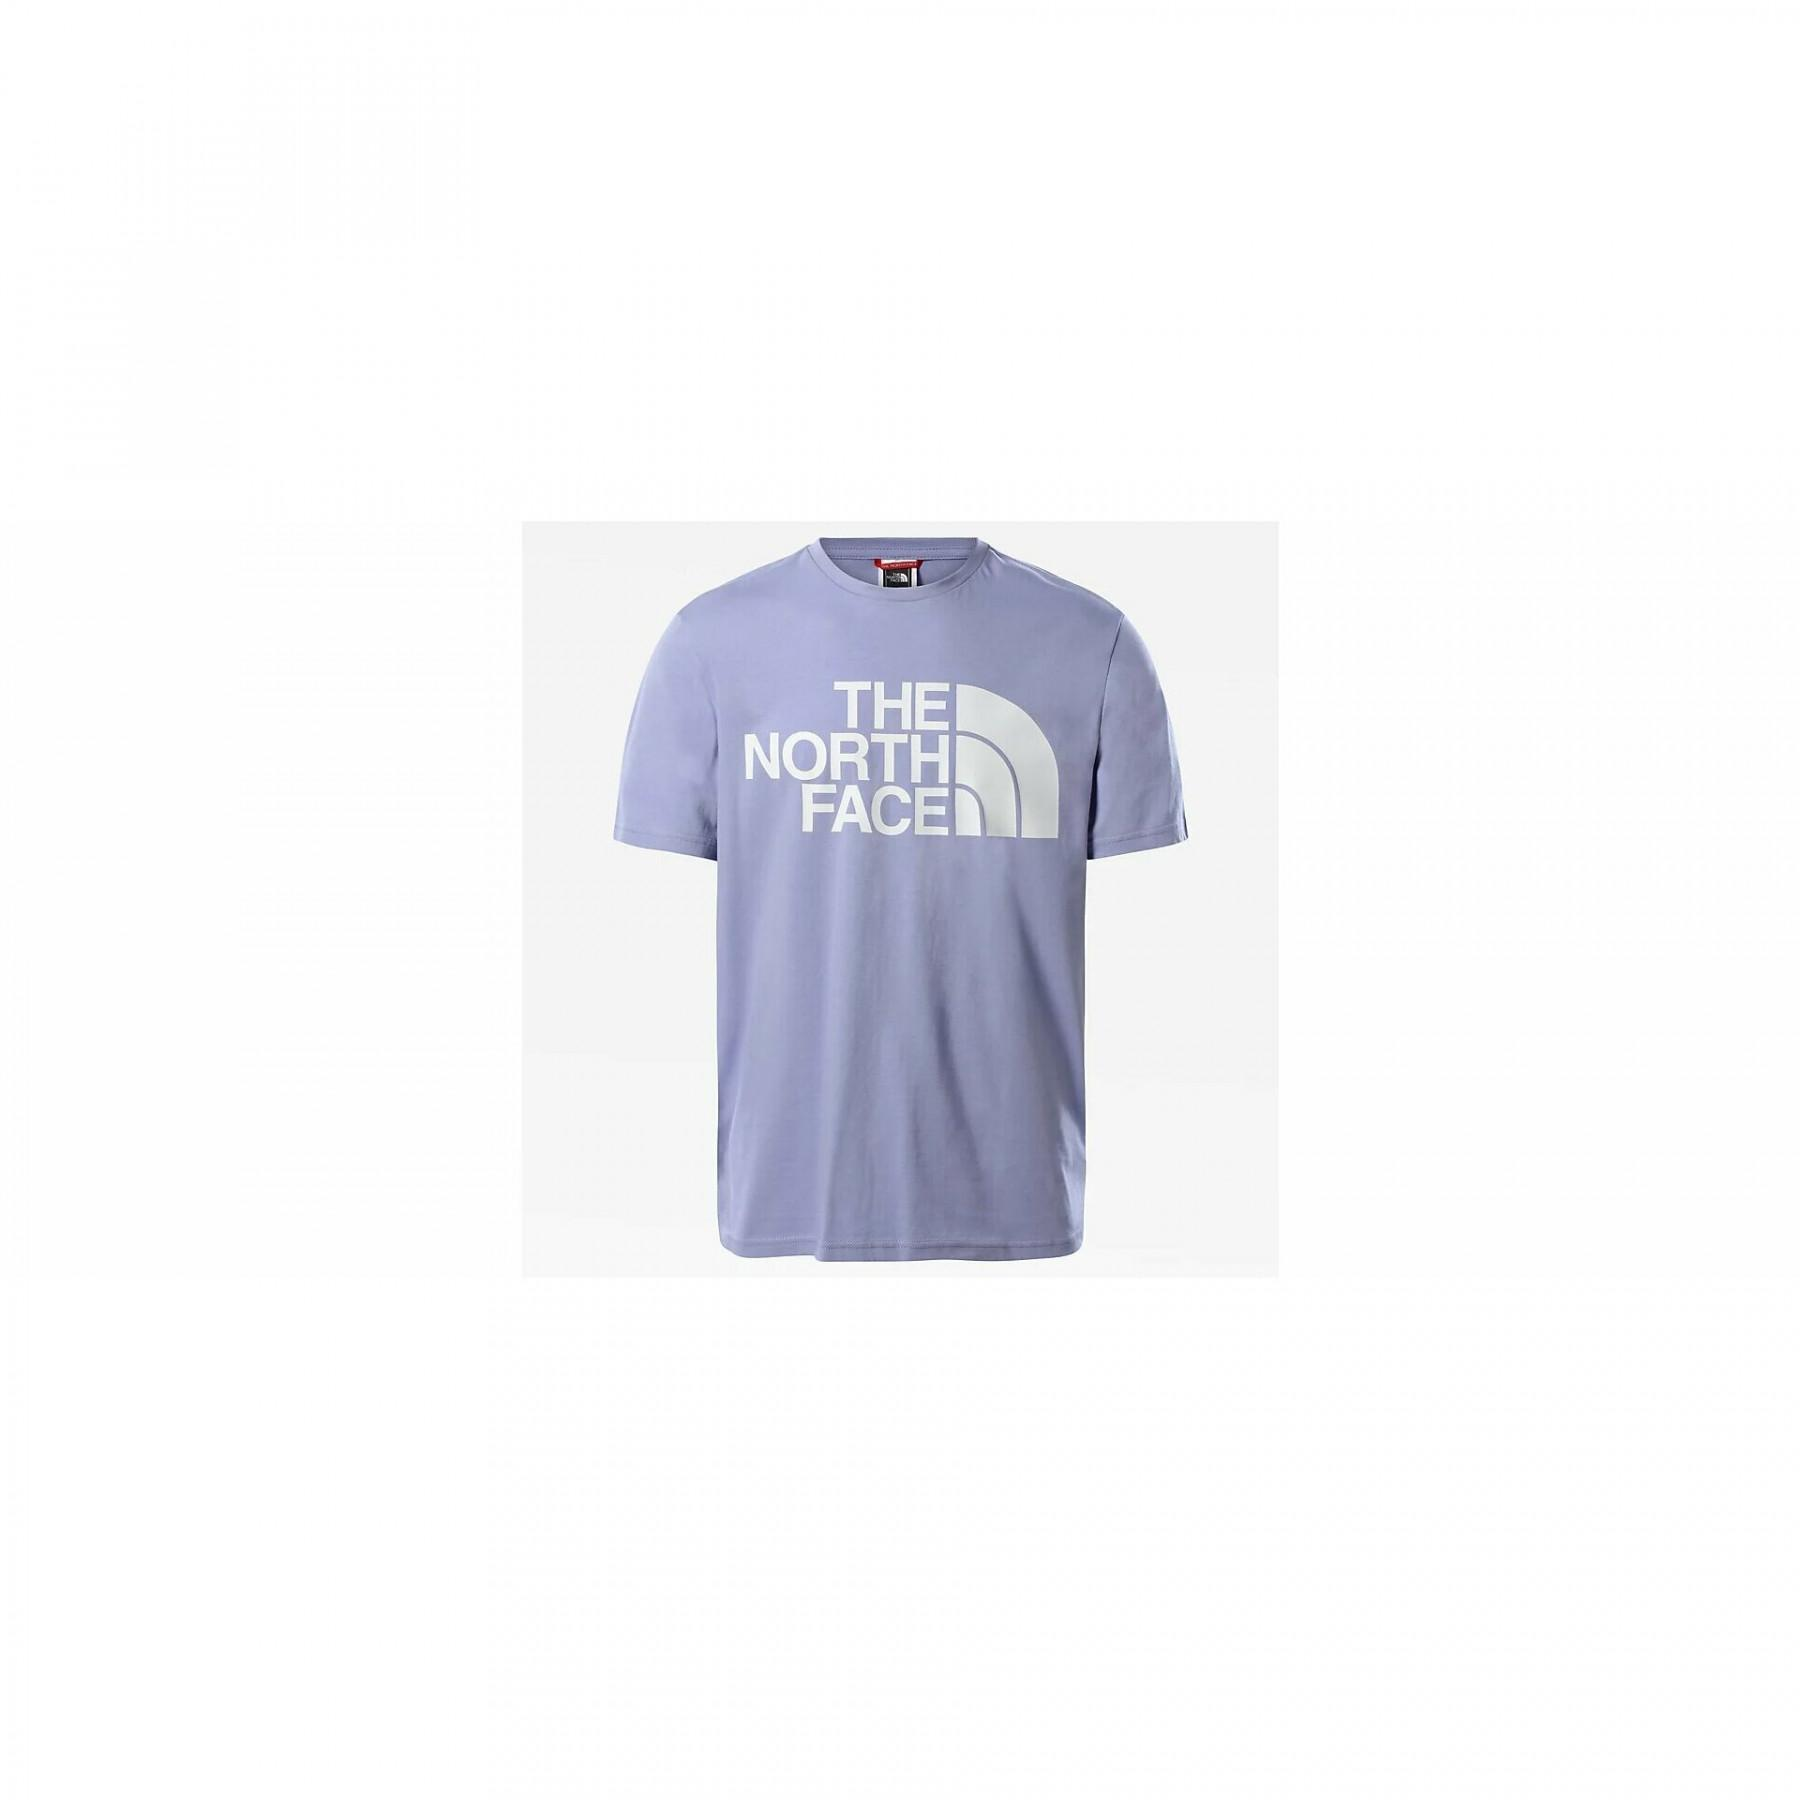 The North Face standard T-shirt